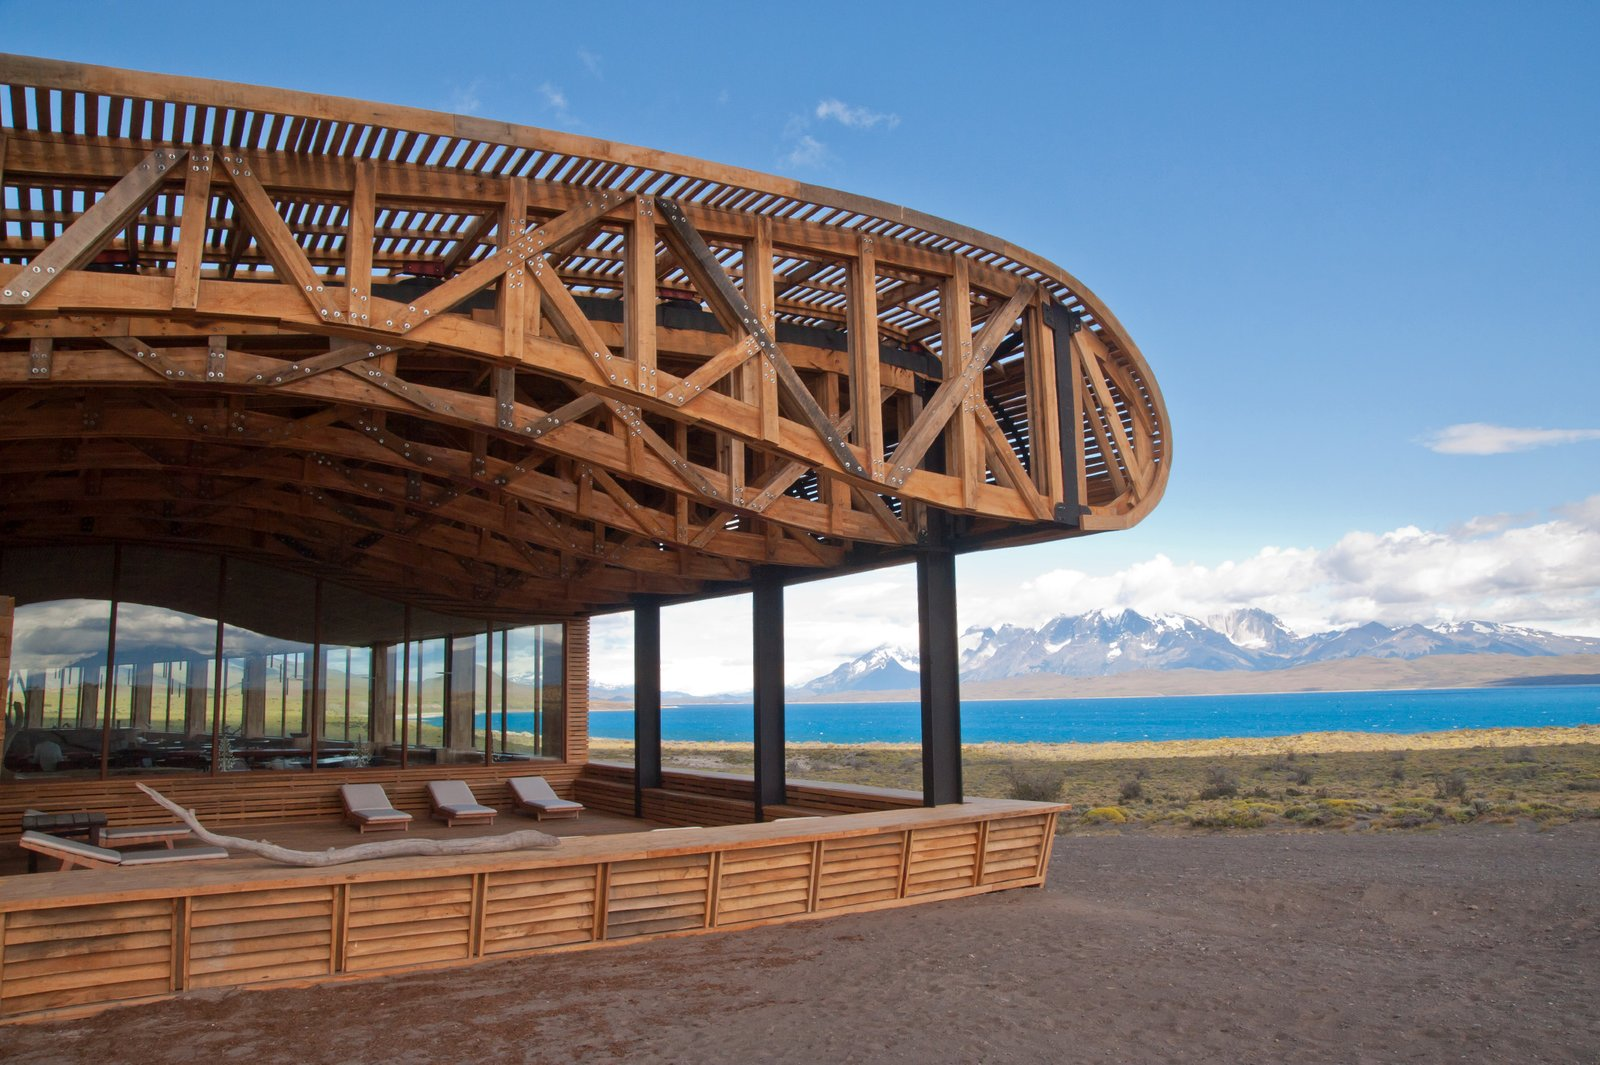 Exterior and Wood Siding Material  Tierra Patagonia Hotel & Spa